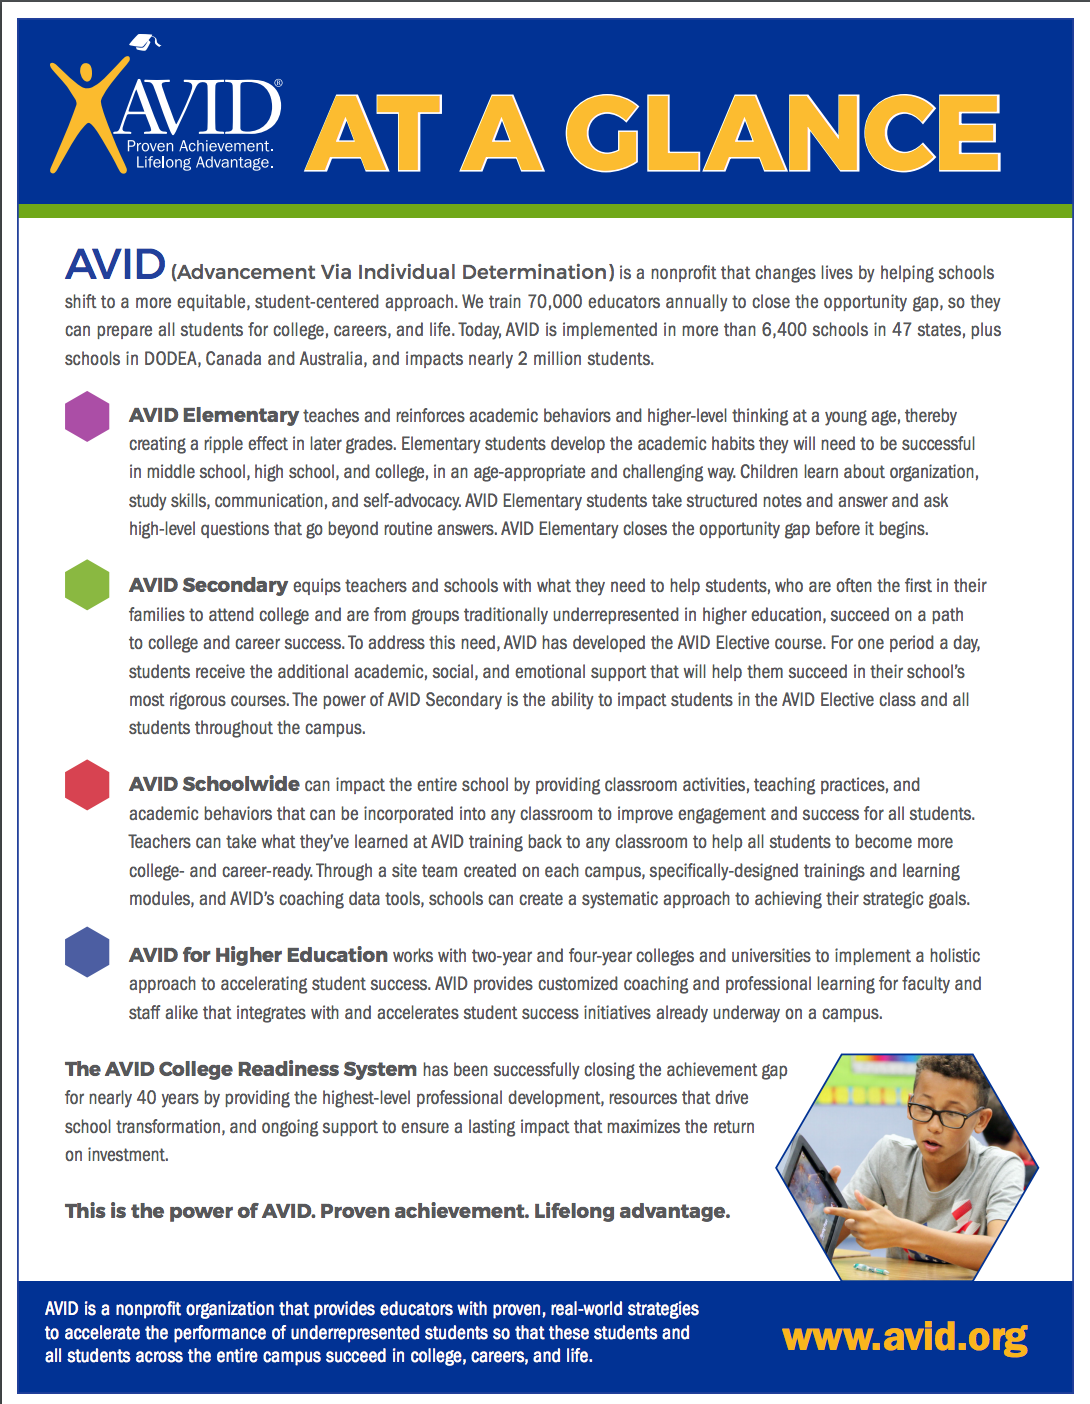 AVID at a Glance.png